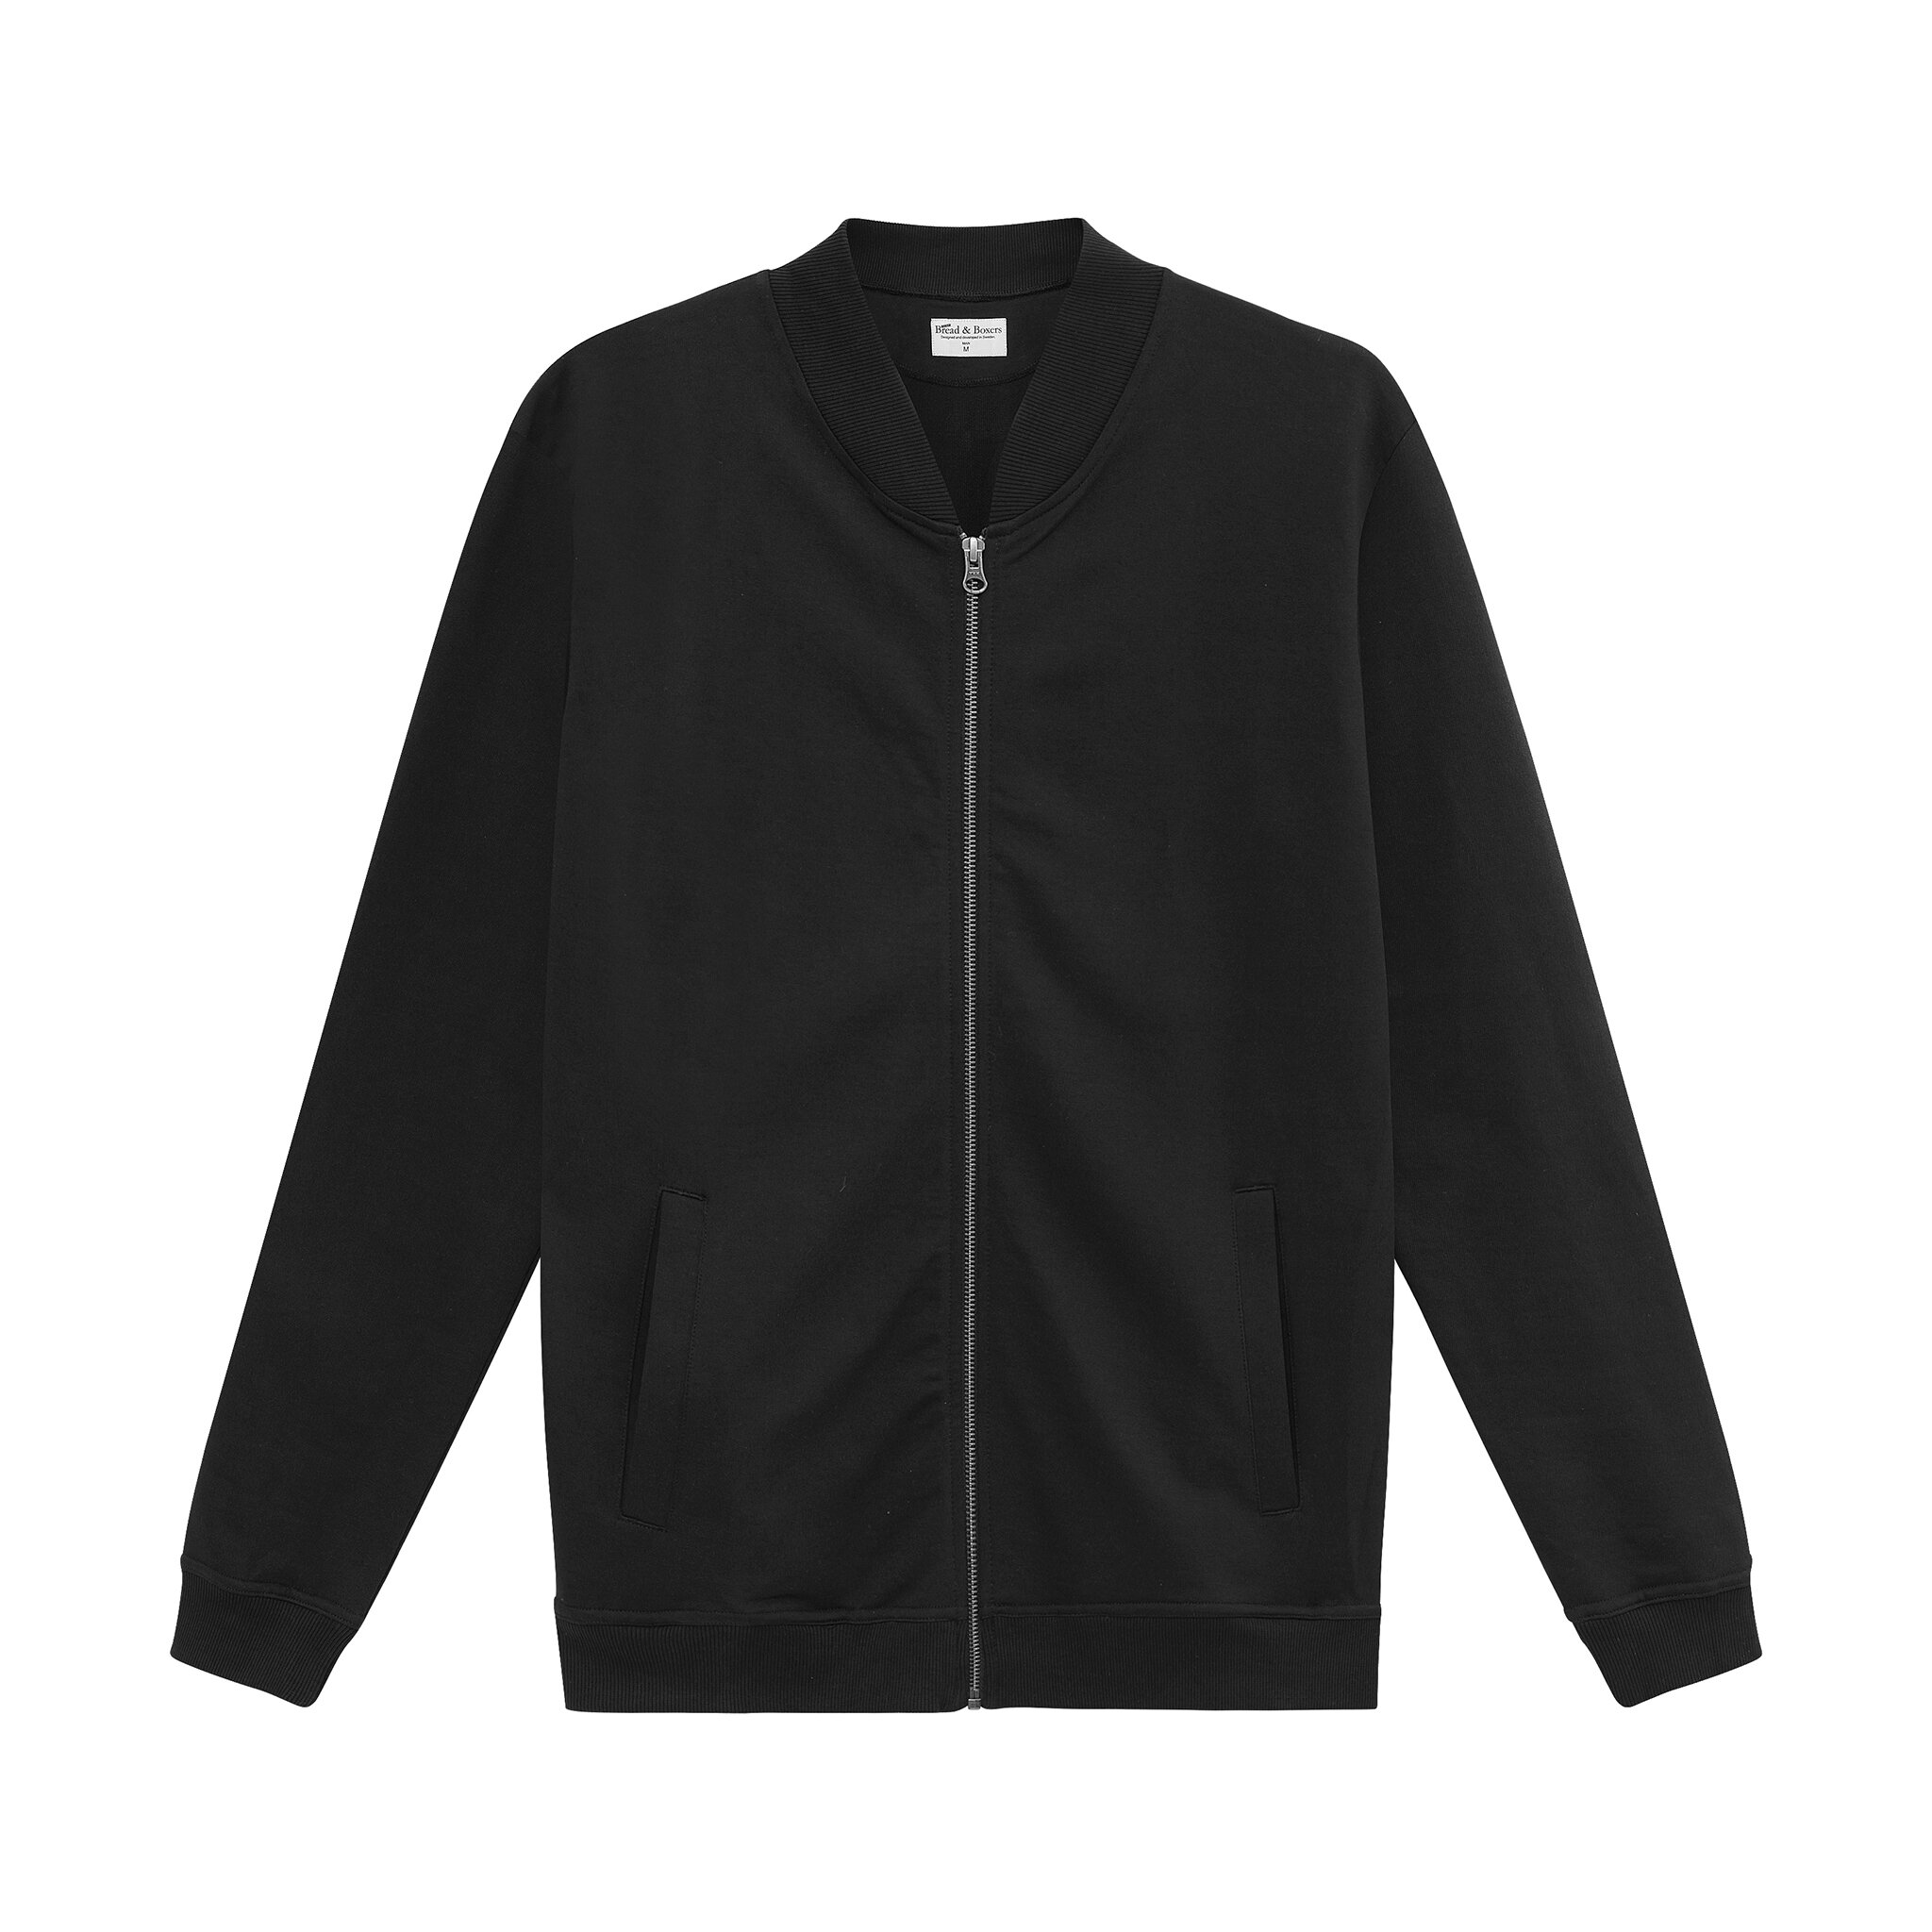 416202_Man_Jersey Jacket_black